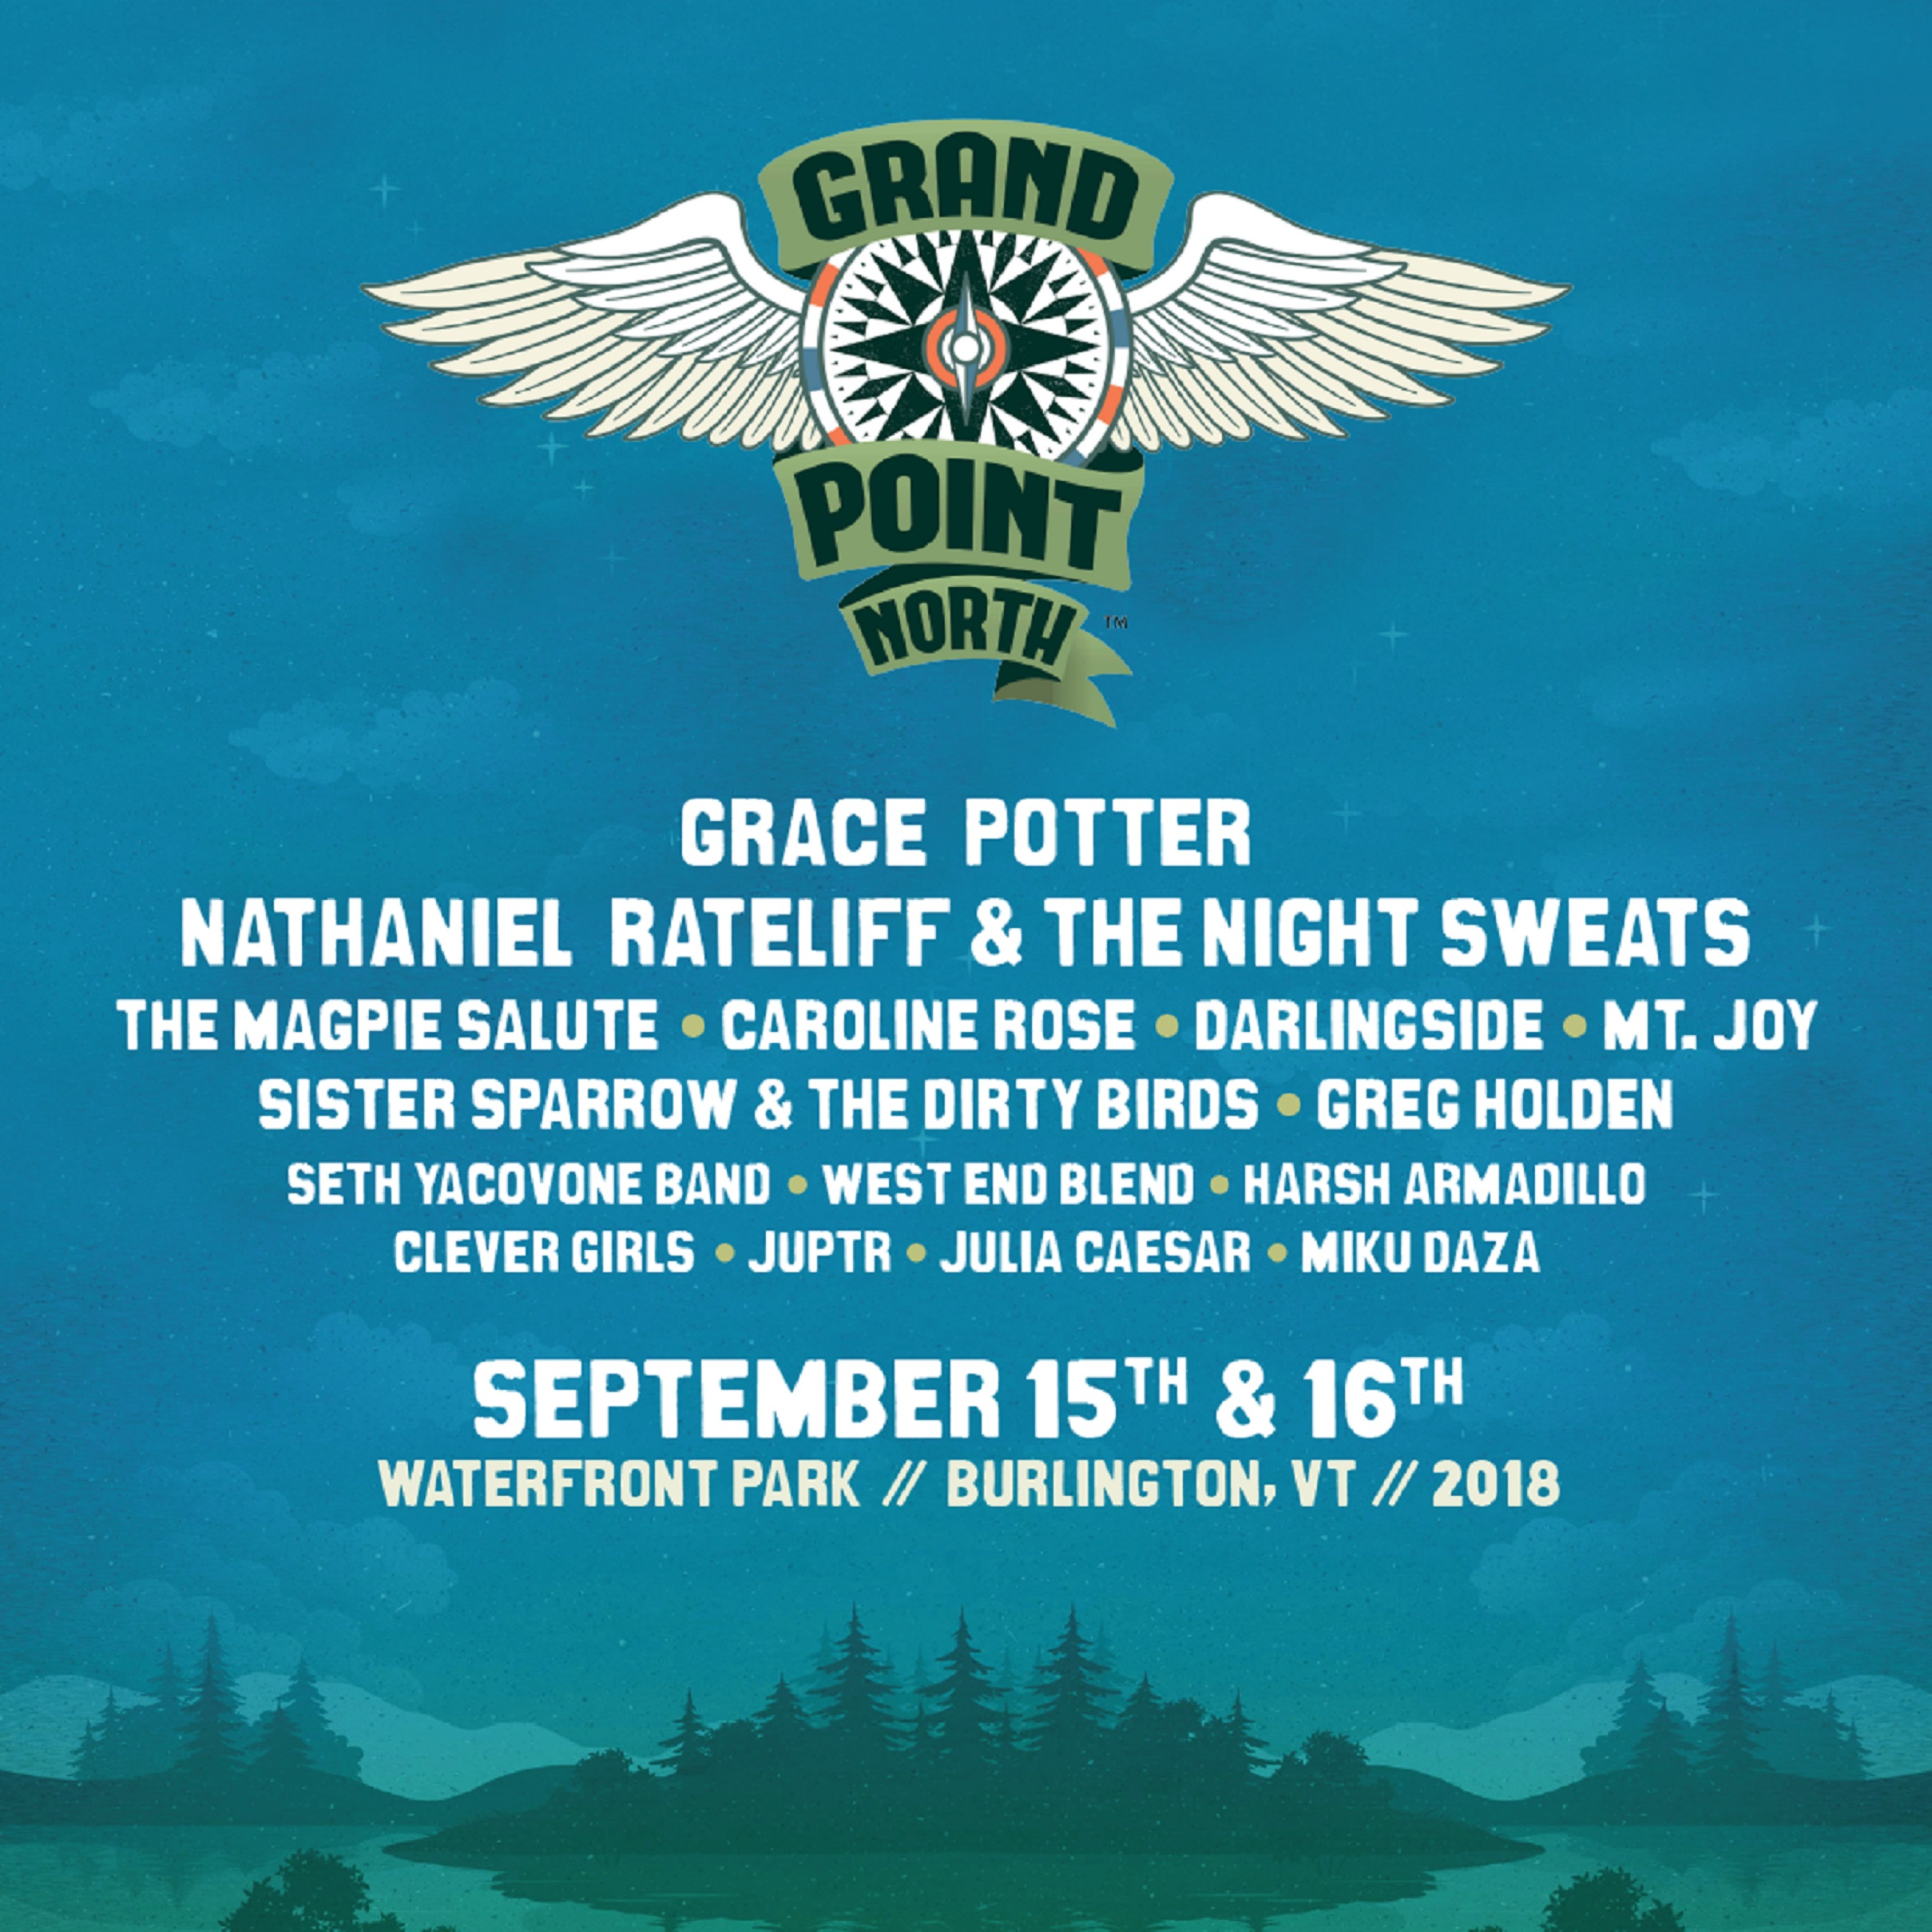 Grand Point North Festival Announces 2018 Lineup